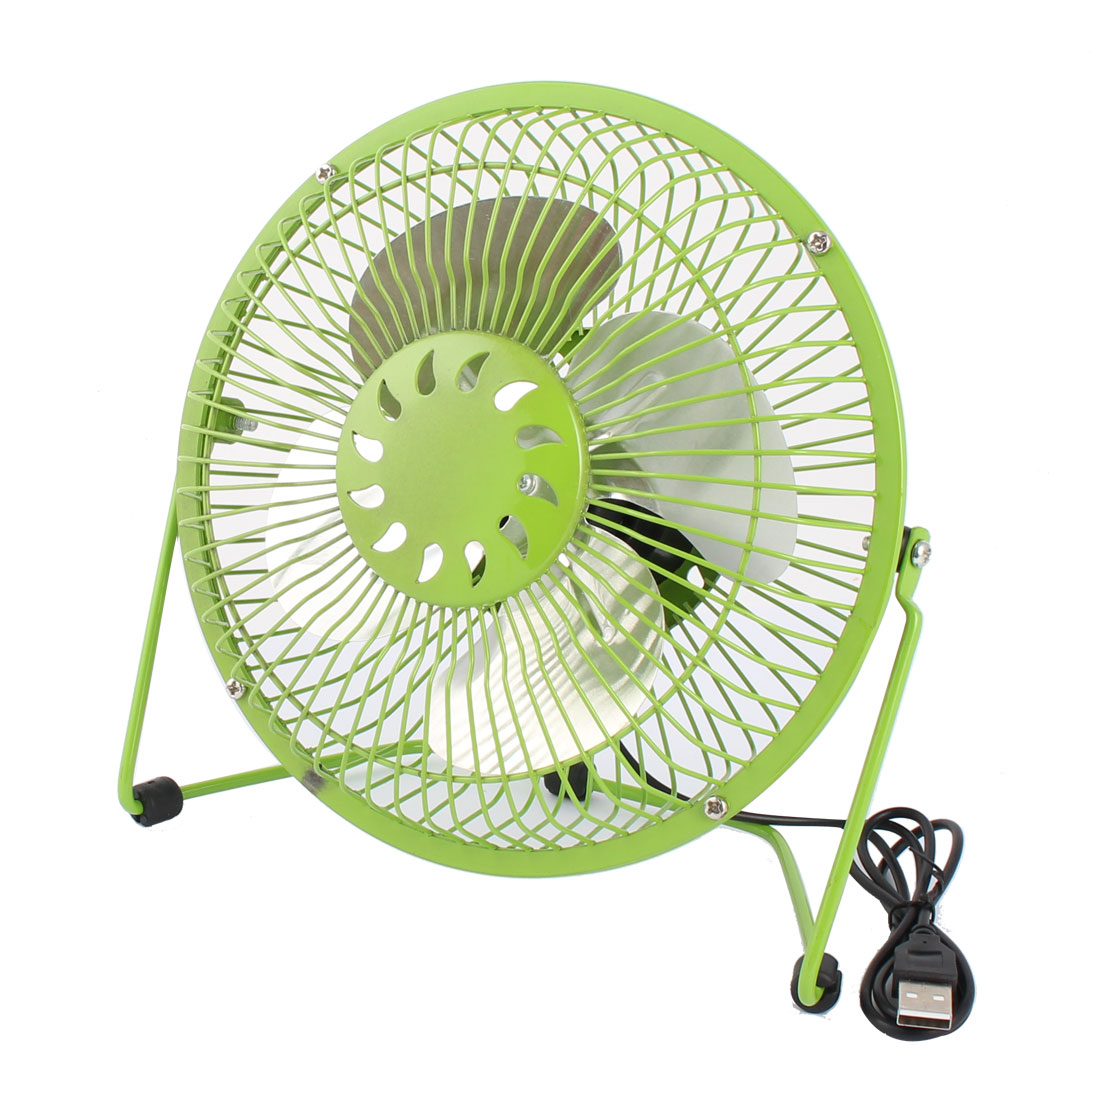 Computer Notebook Laptop Metal Portable USB Mini Cooler Cooling Fan Green